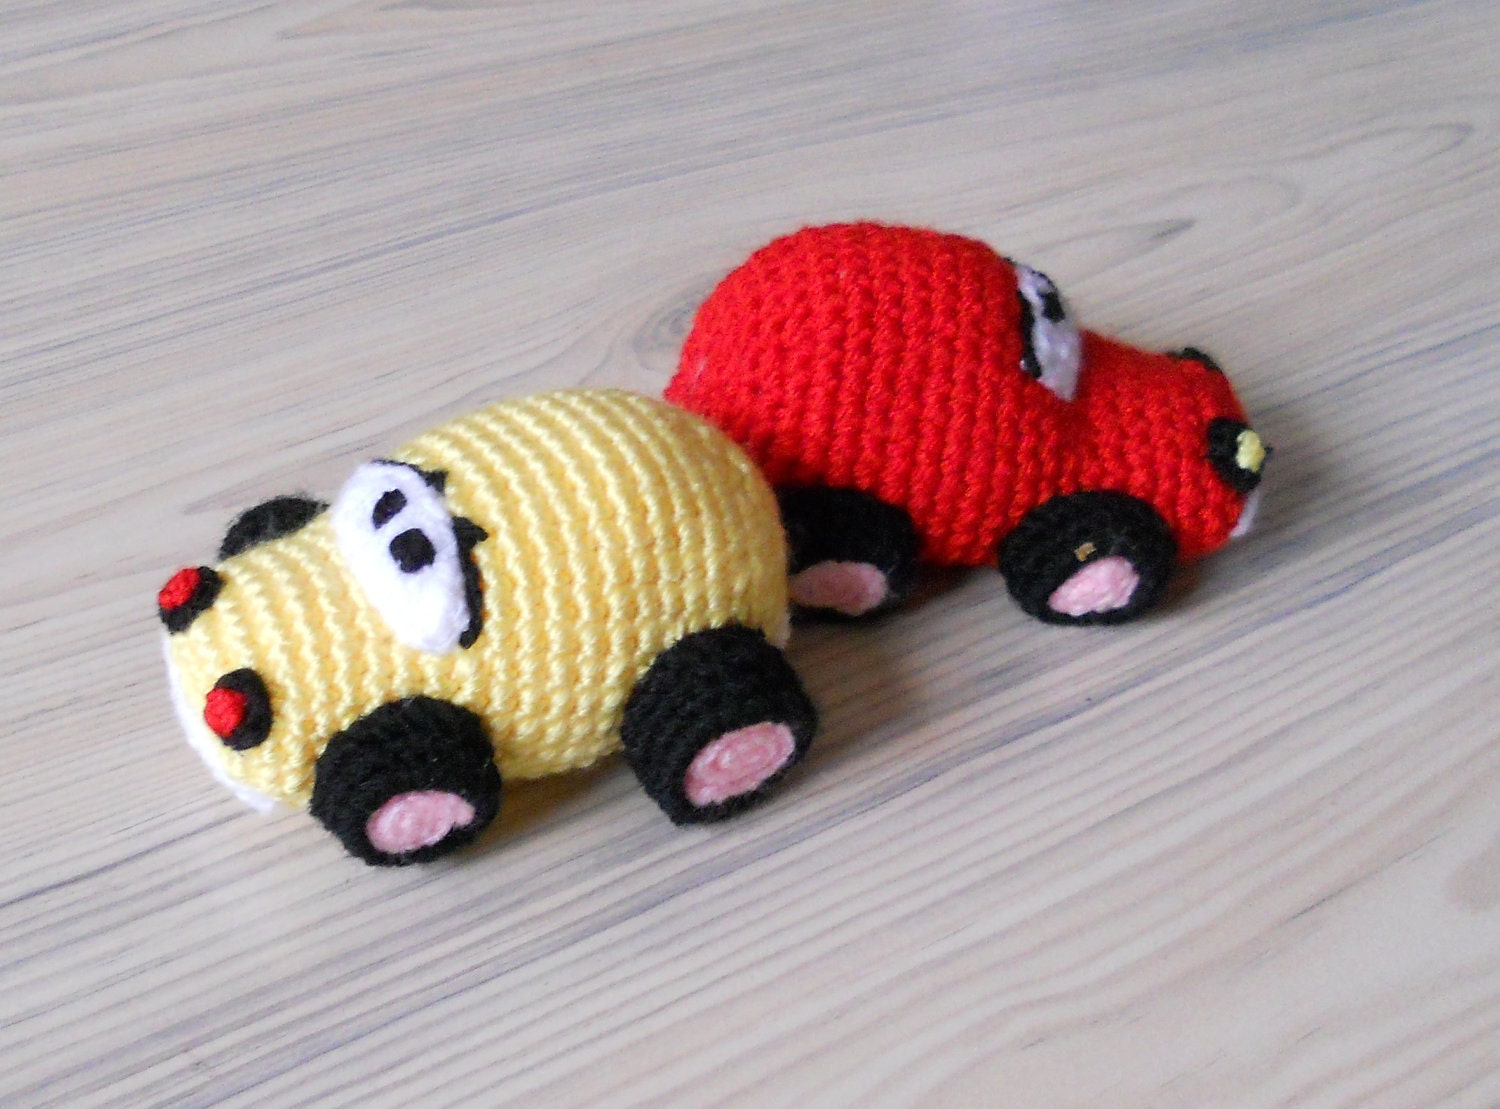 Crochet car baby toys red car yellow car baby by jelenateperik